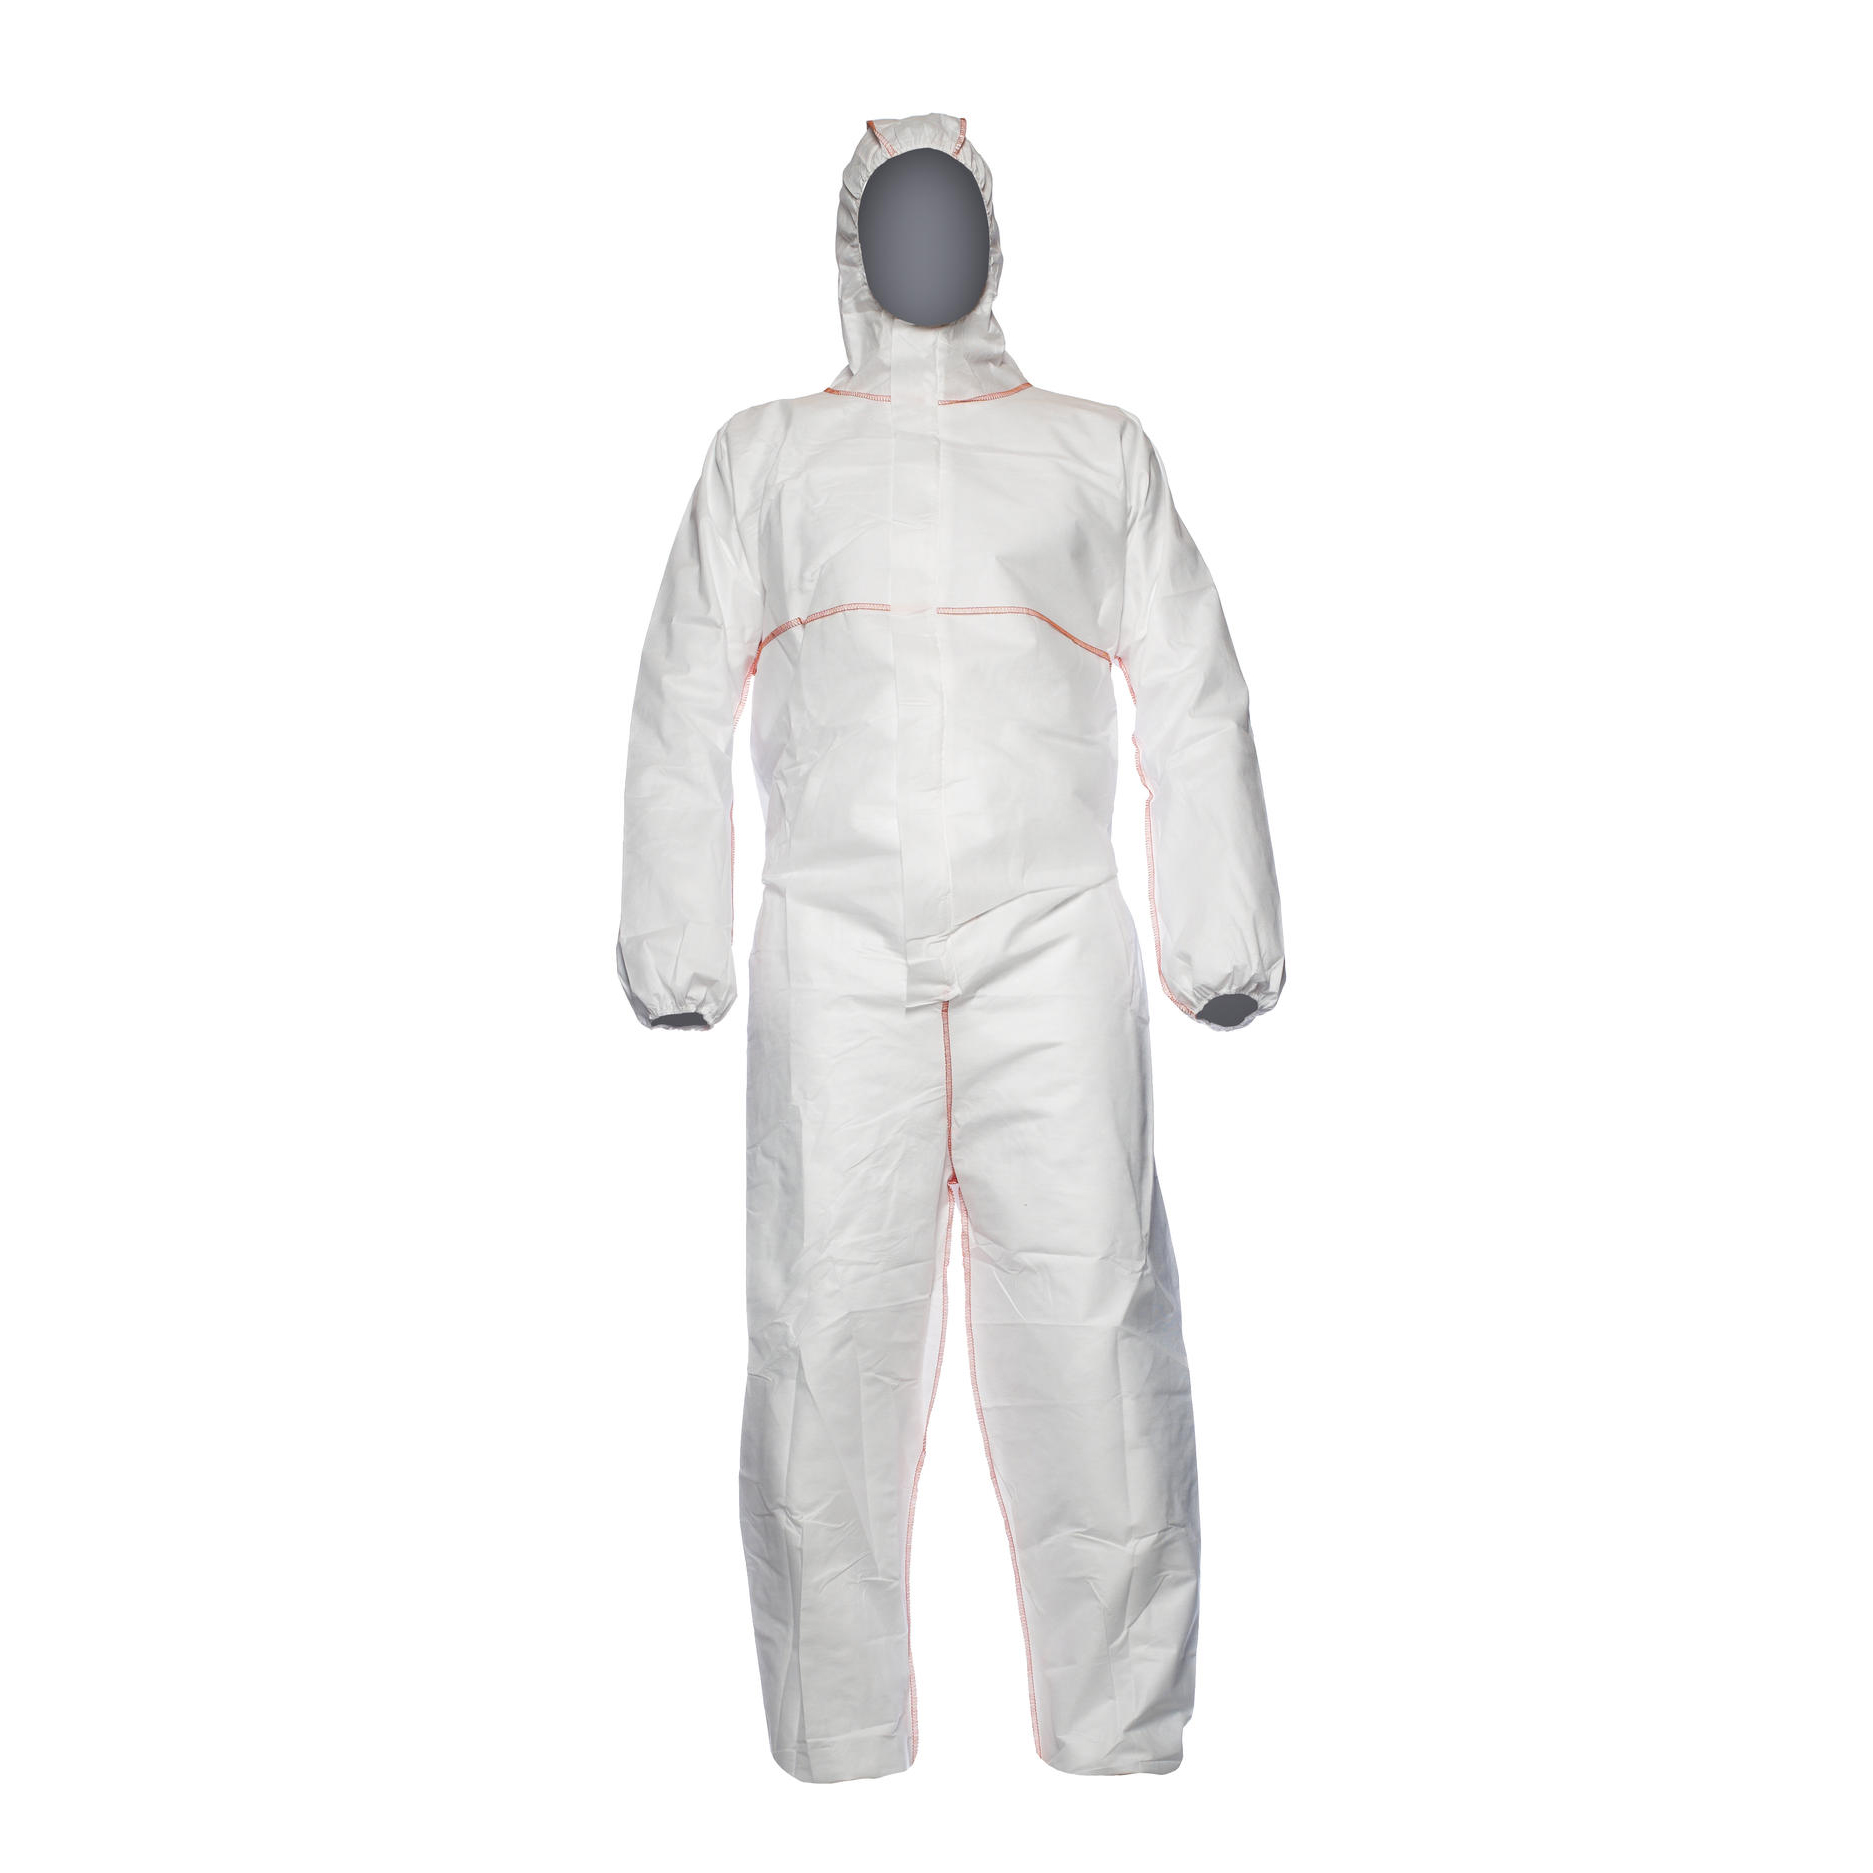 Protective coveralls Proshield Fire Resistant Coveralls White L Ref PROFRL *Up to 3 Day Leadtime*